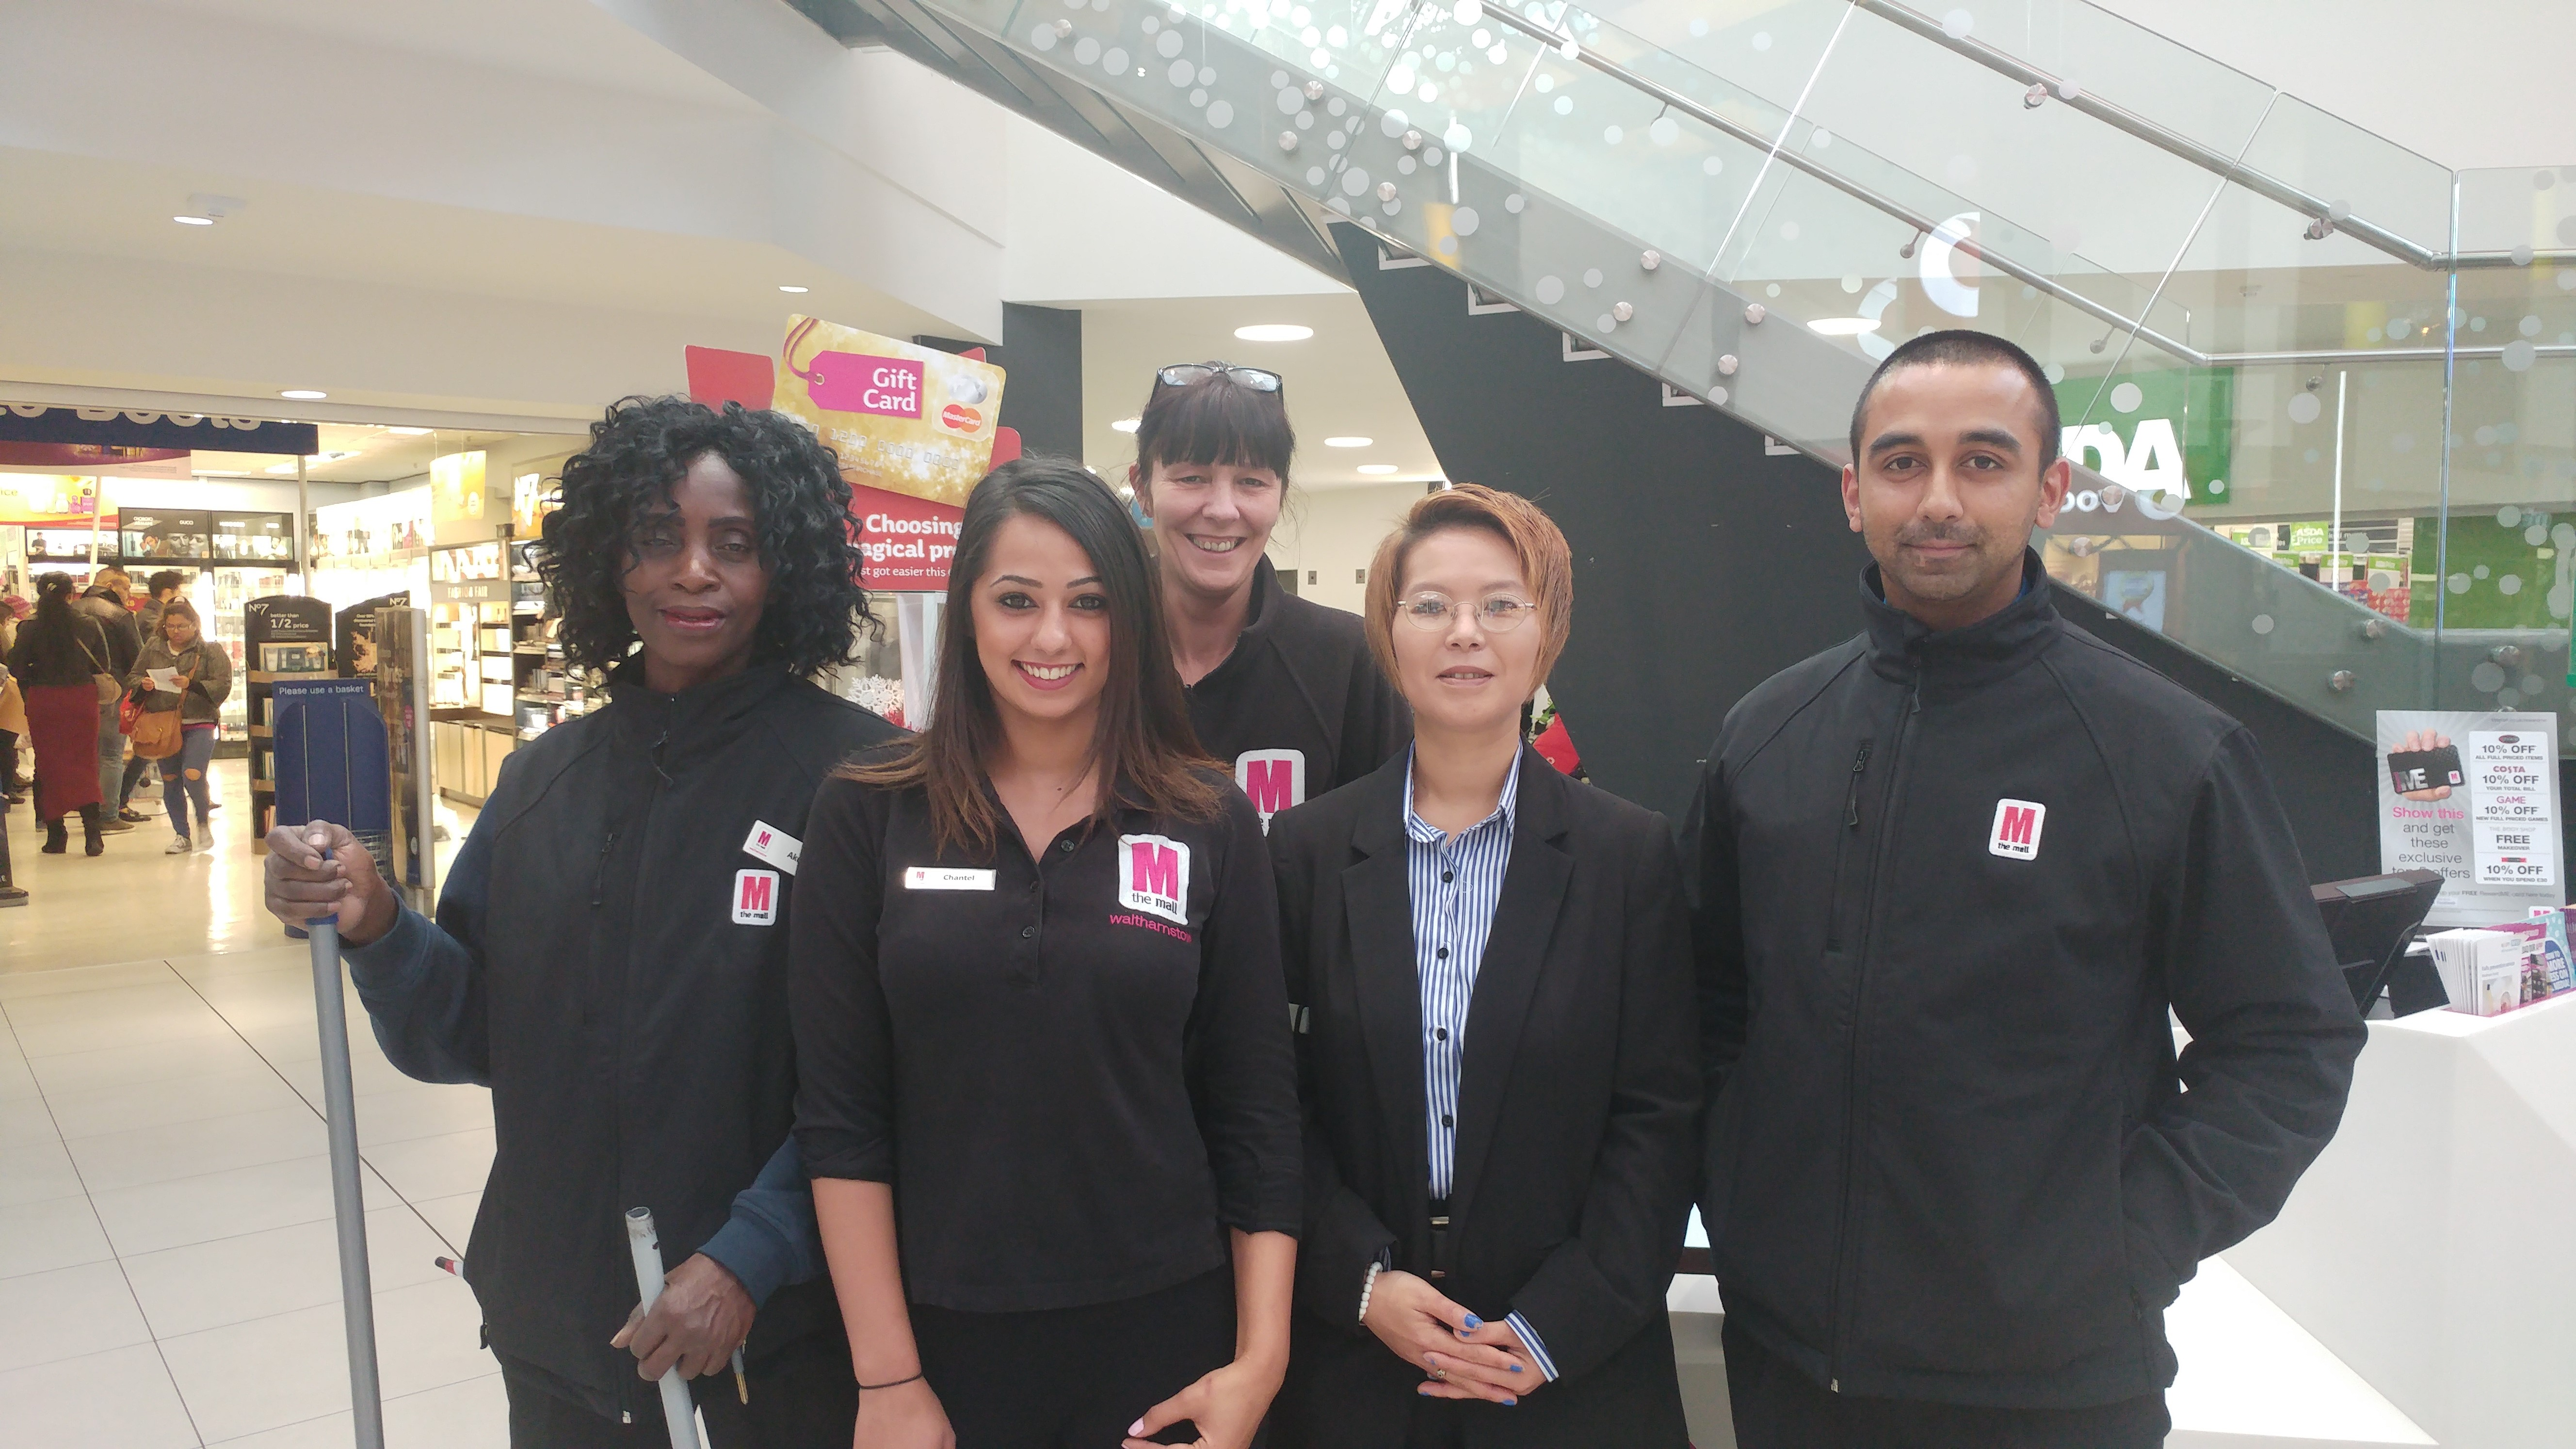 The Mall Walthamstow achieves WorldHost recognition for excellent customer service